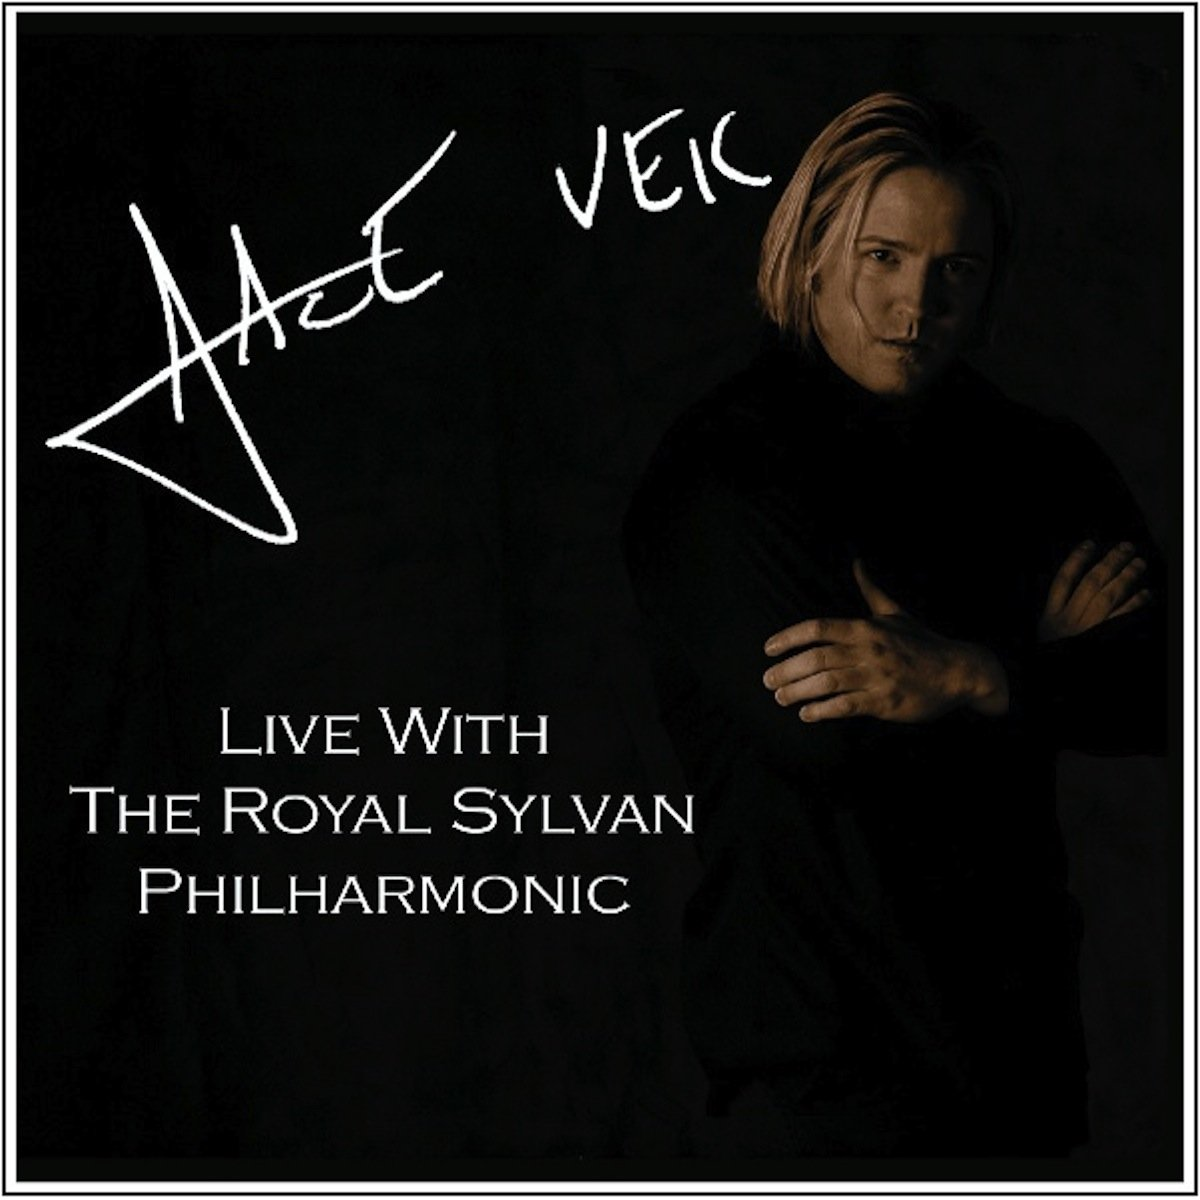 Jace Vek Live with the Royal Sylvan Philharmonic